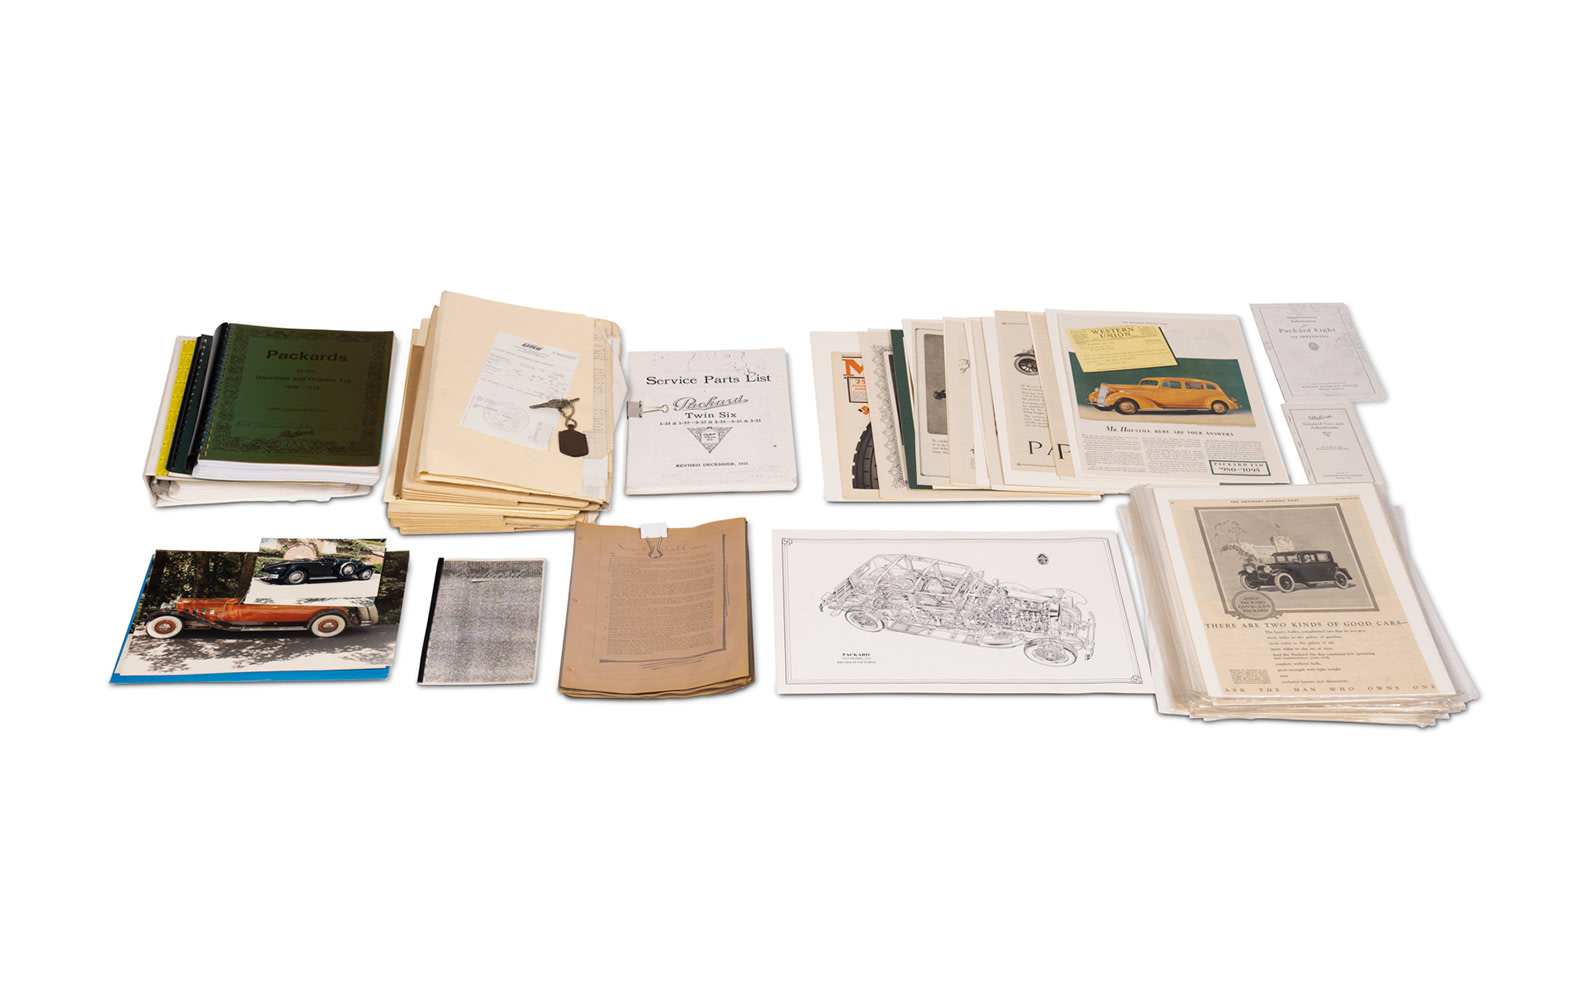 Assorted Correspondence, Photographs, and Files Relating to the Packard Motor Car Company